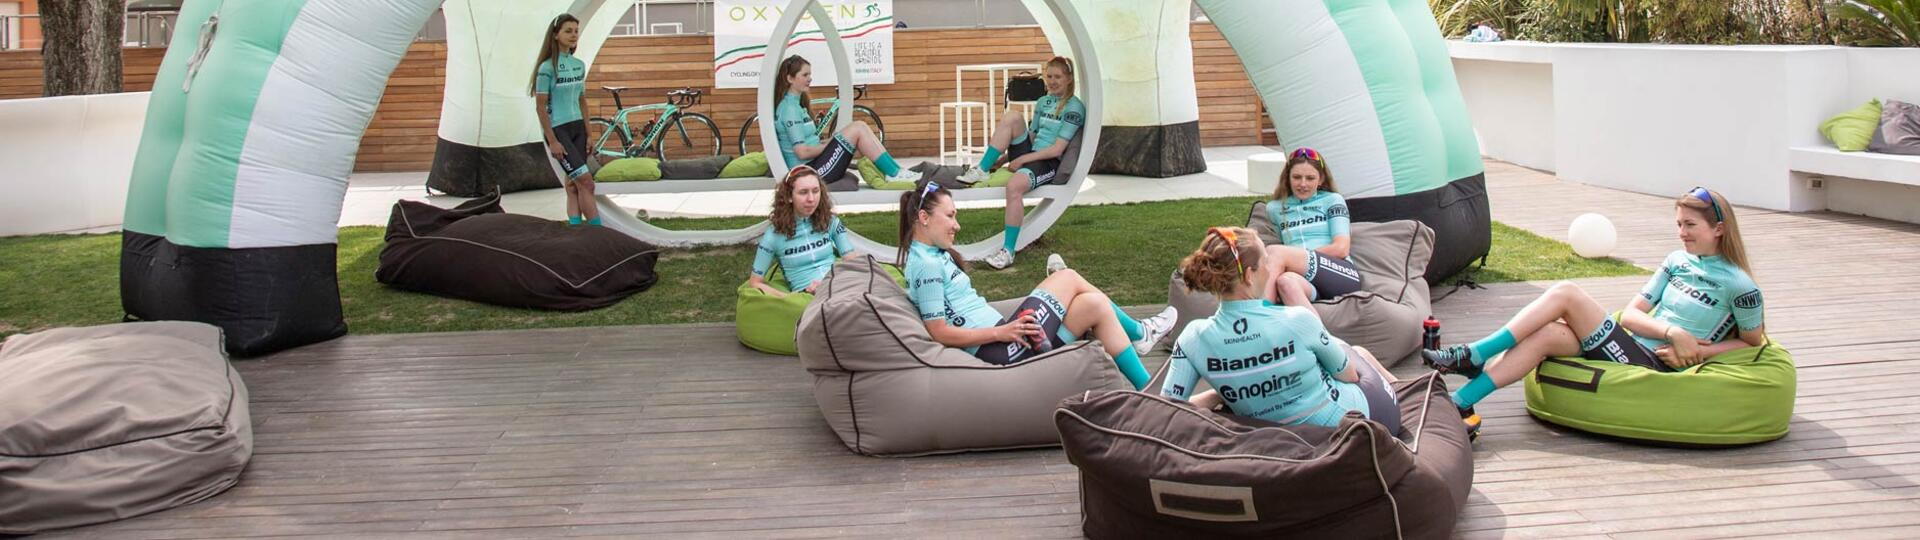 cycling.oxygenhotel en weekend-bike-tour-on-half-board-with-stay-in-b-b-with-special-arrangement 014